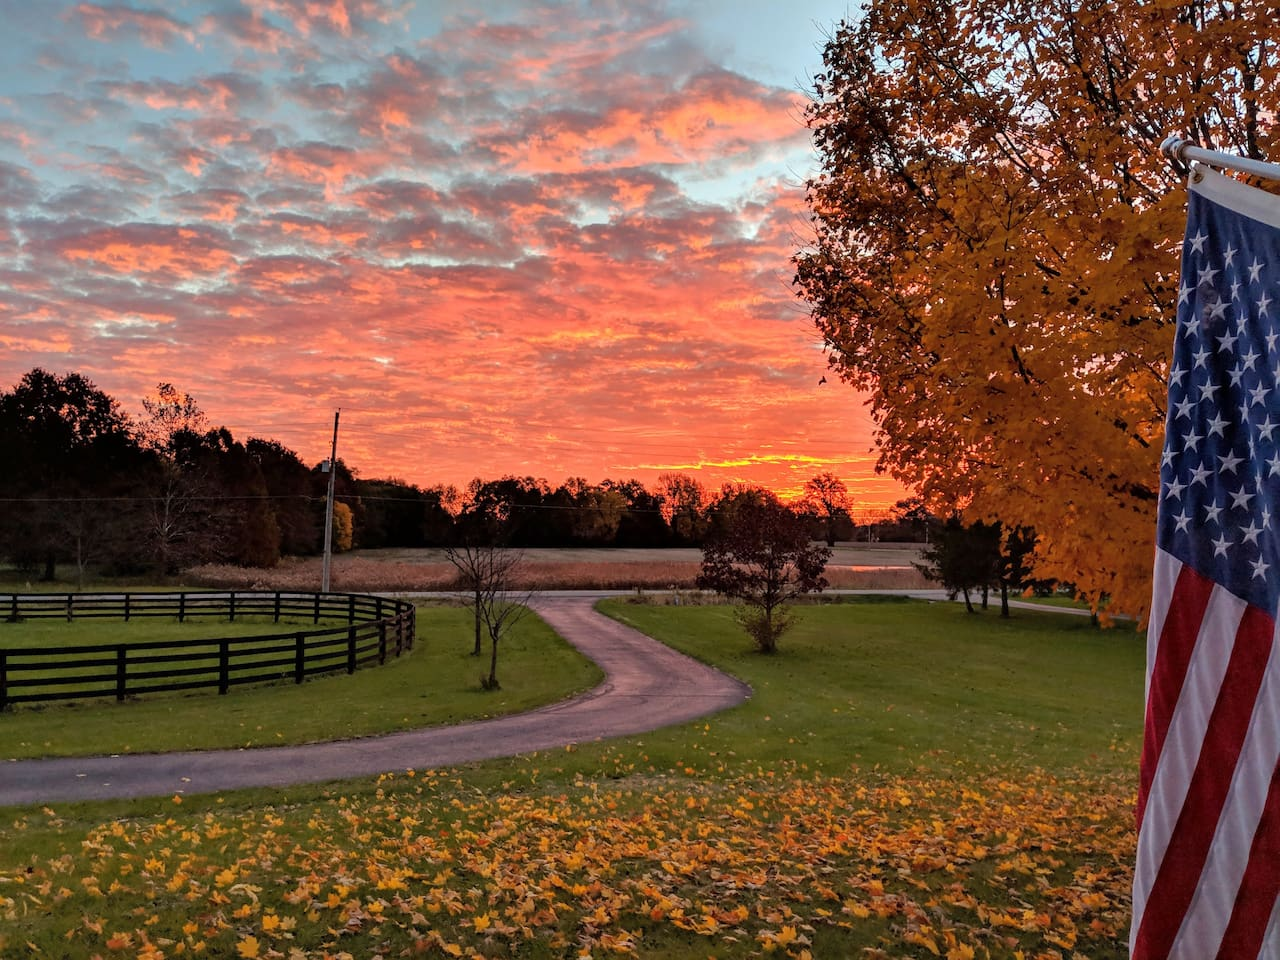 Enjoy a sunrise from your bedroom window or the front porch rockers.